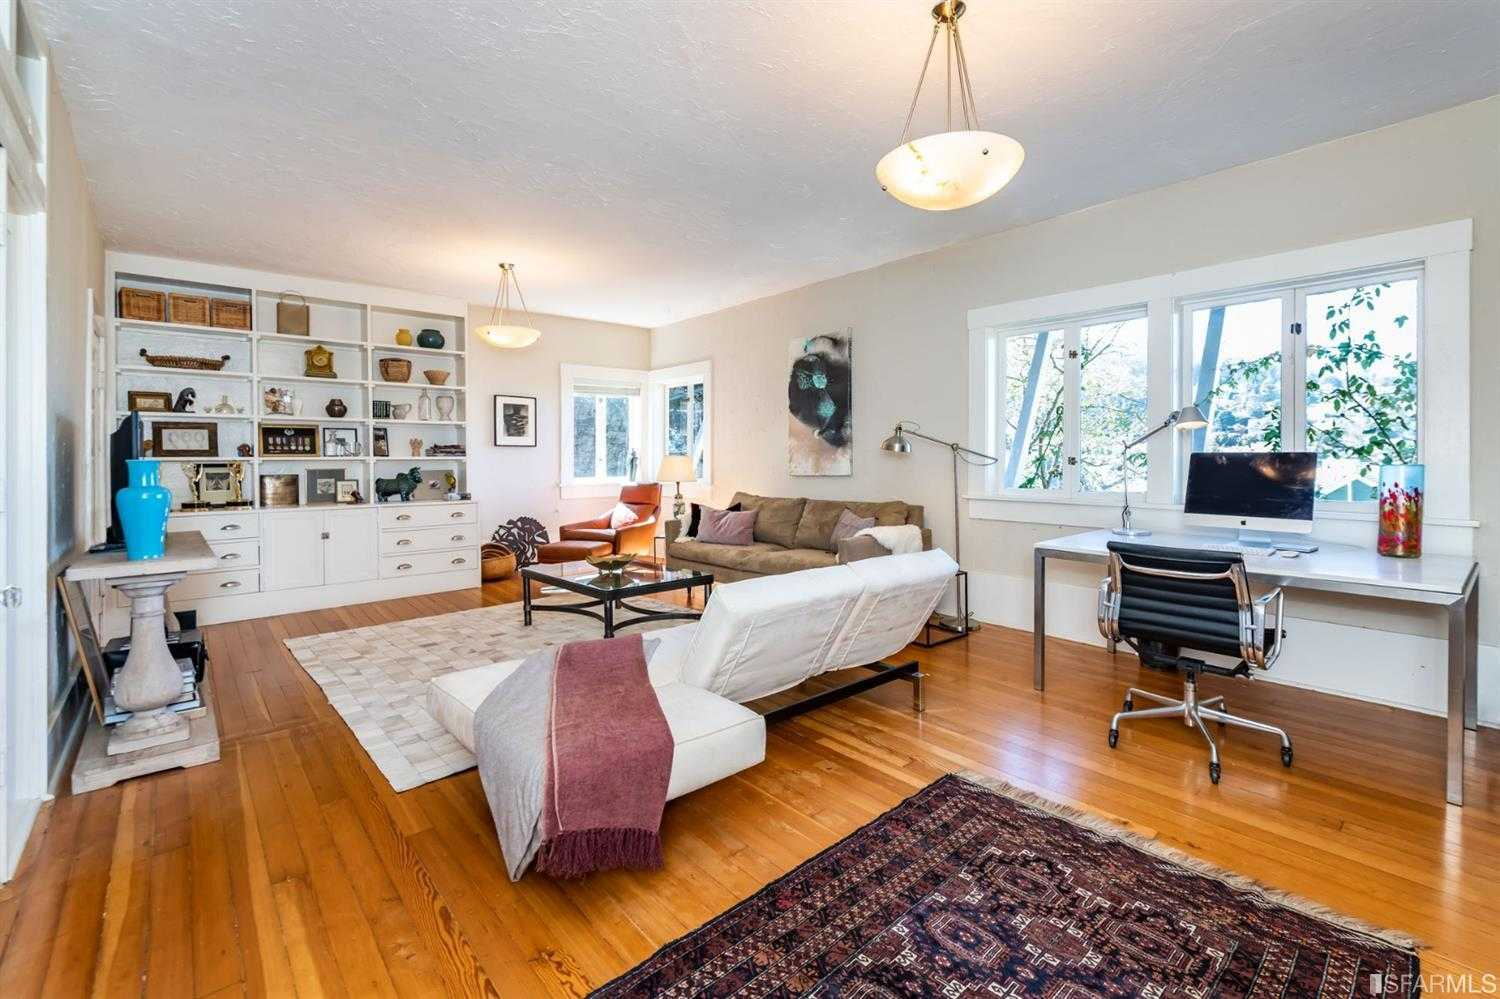 953 Clayton St # 5 San Francisco, CA 94117